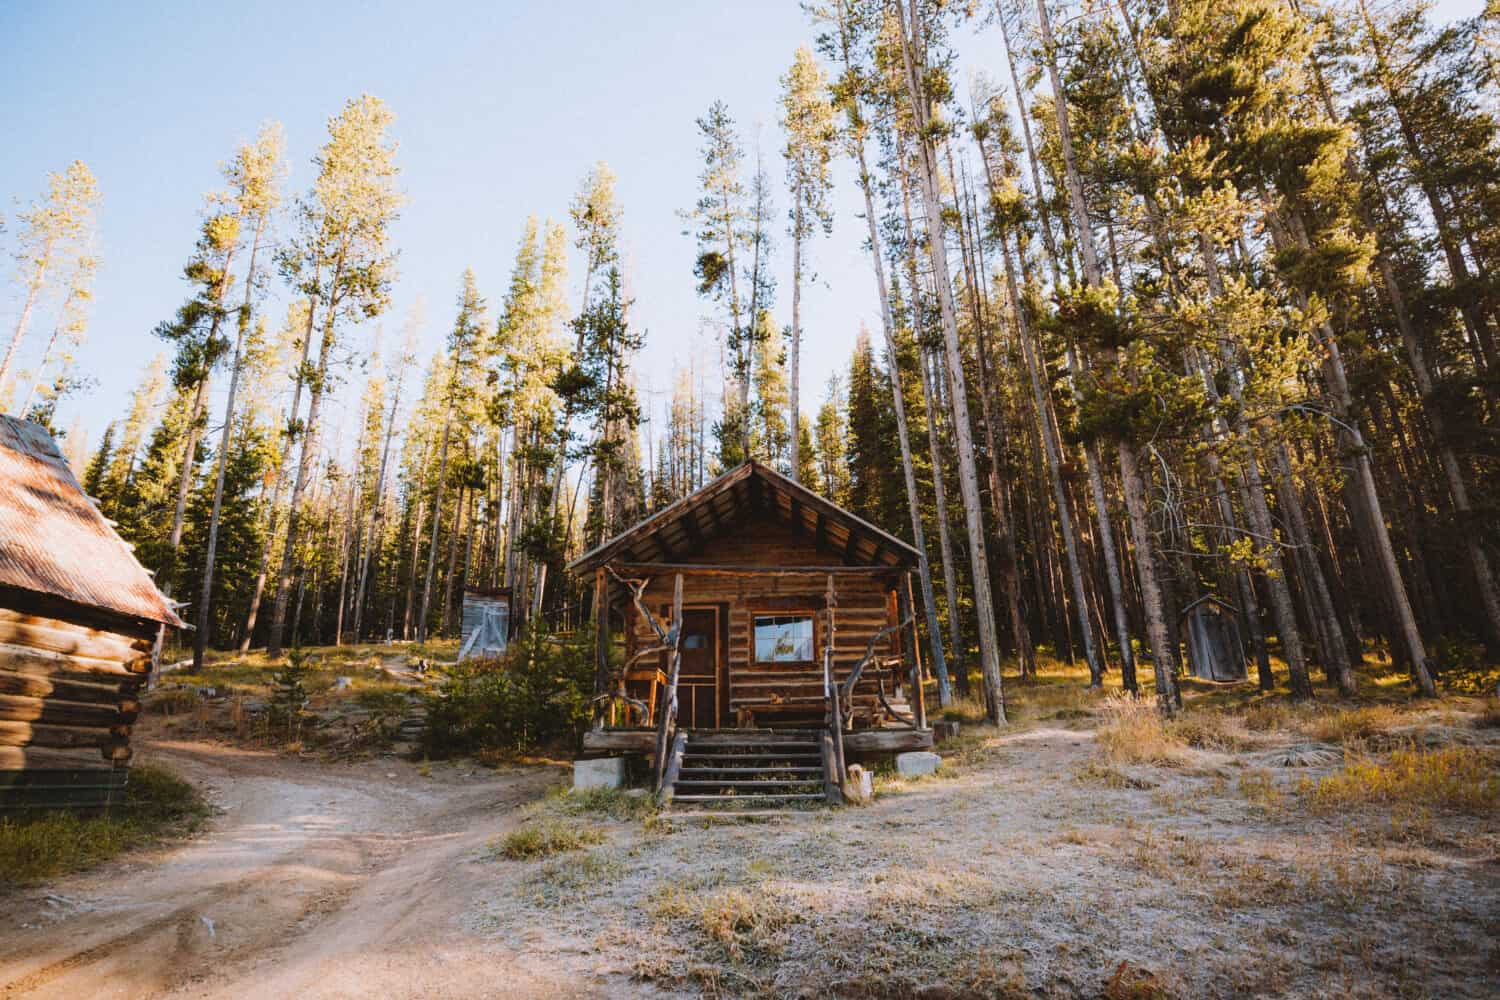 Cabin for rent at Burgdorf Hot Springs, Idaho - TheMandagies.com